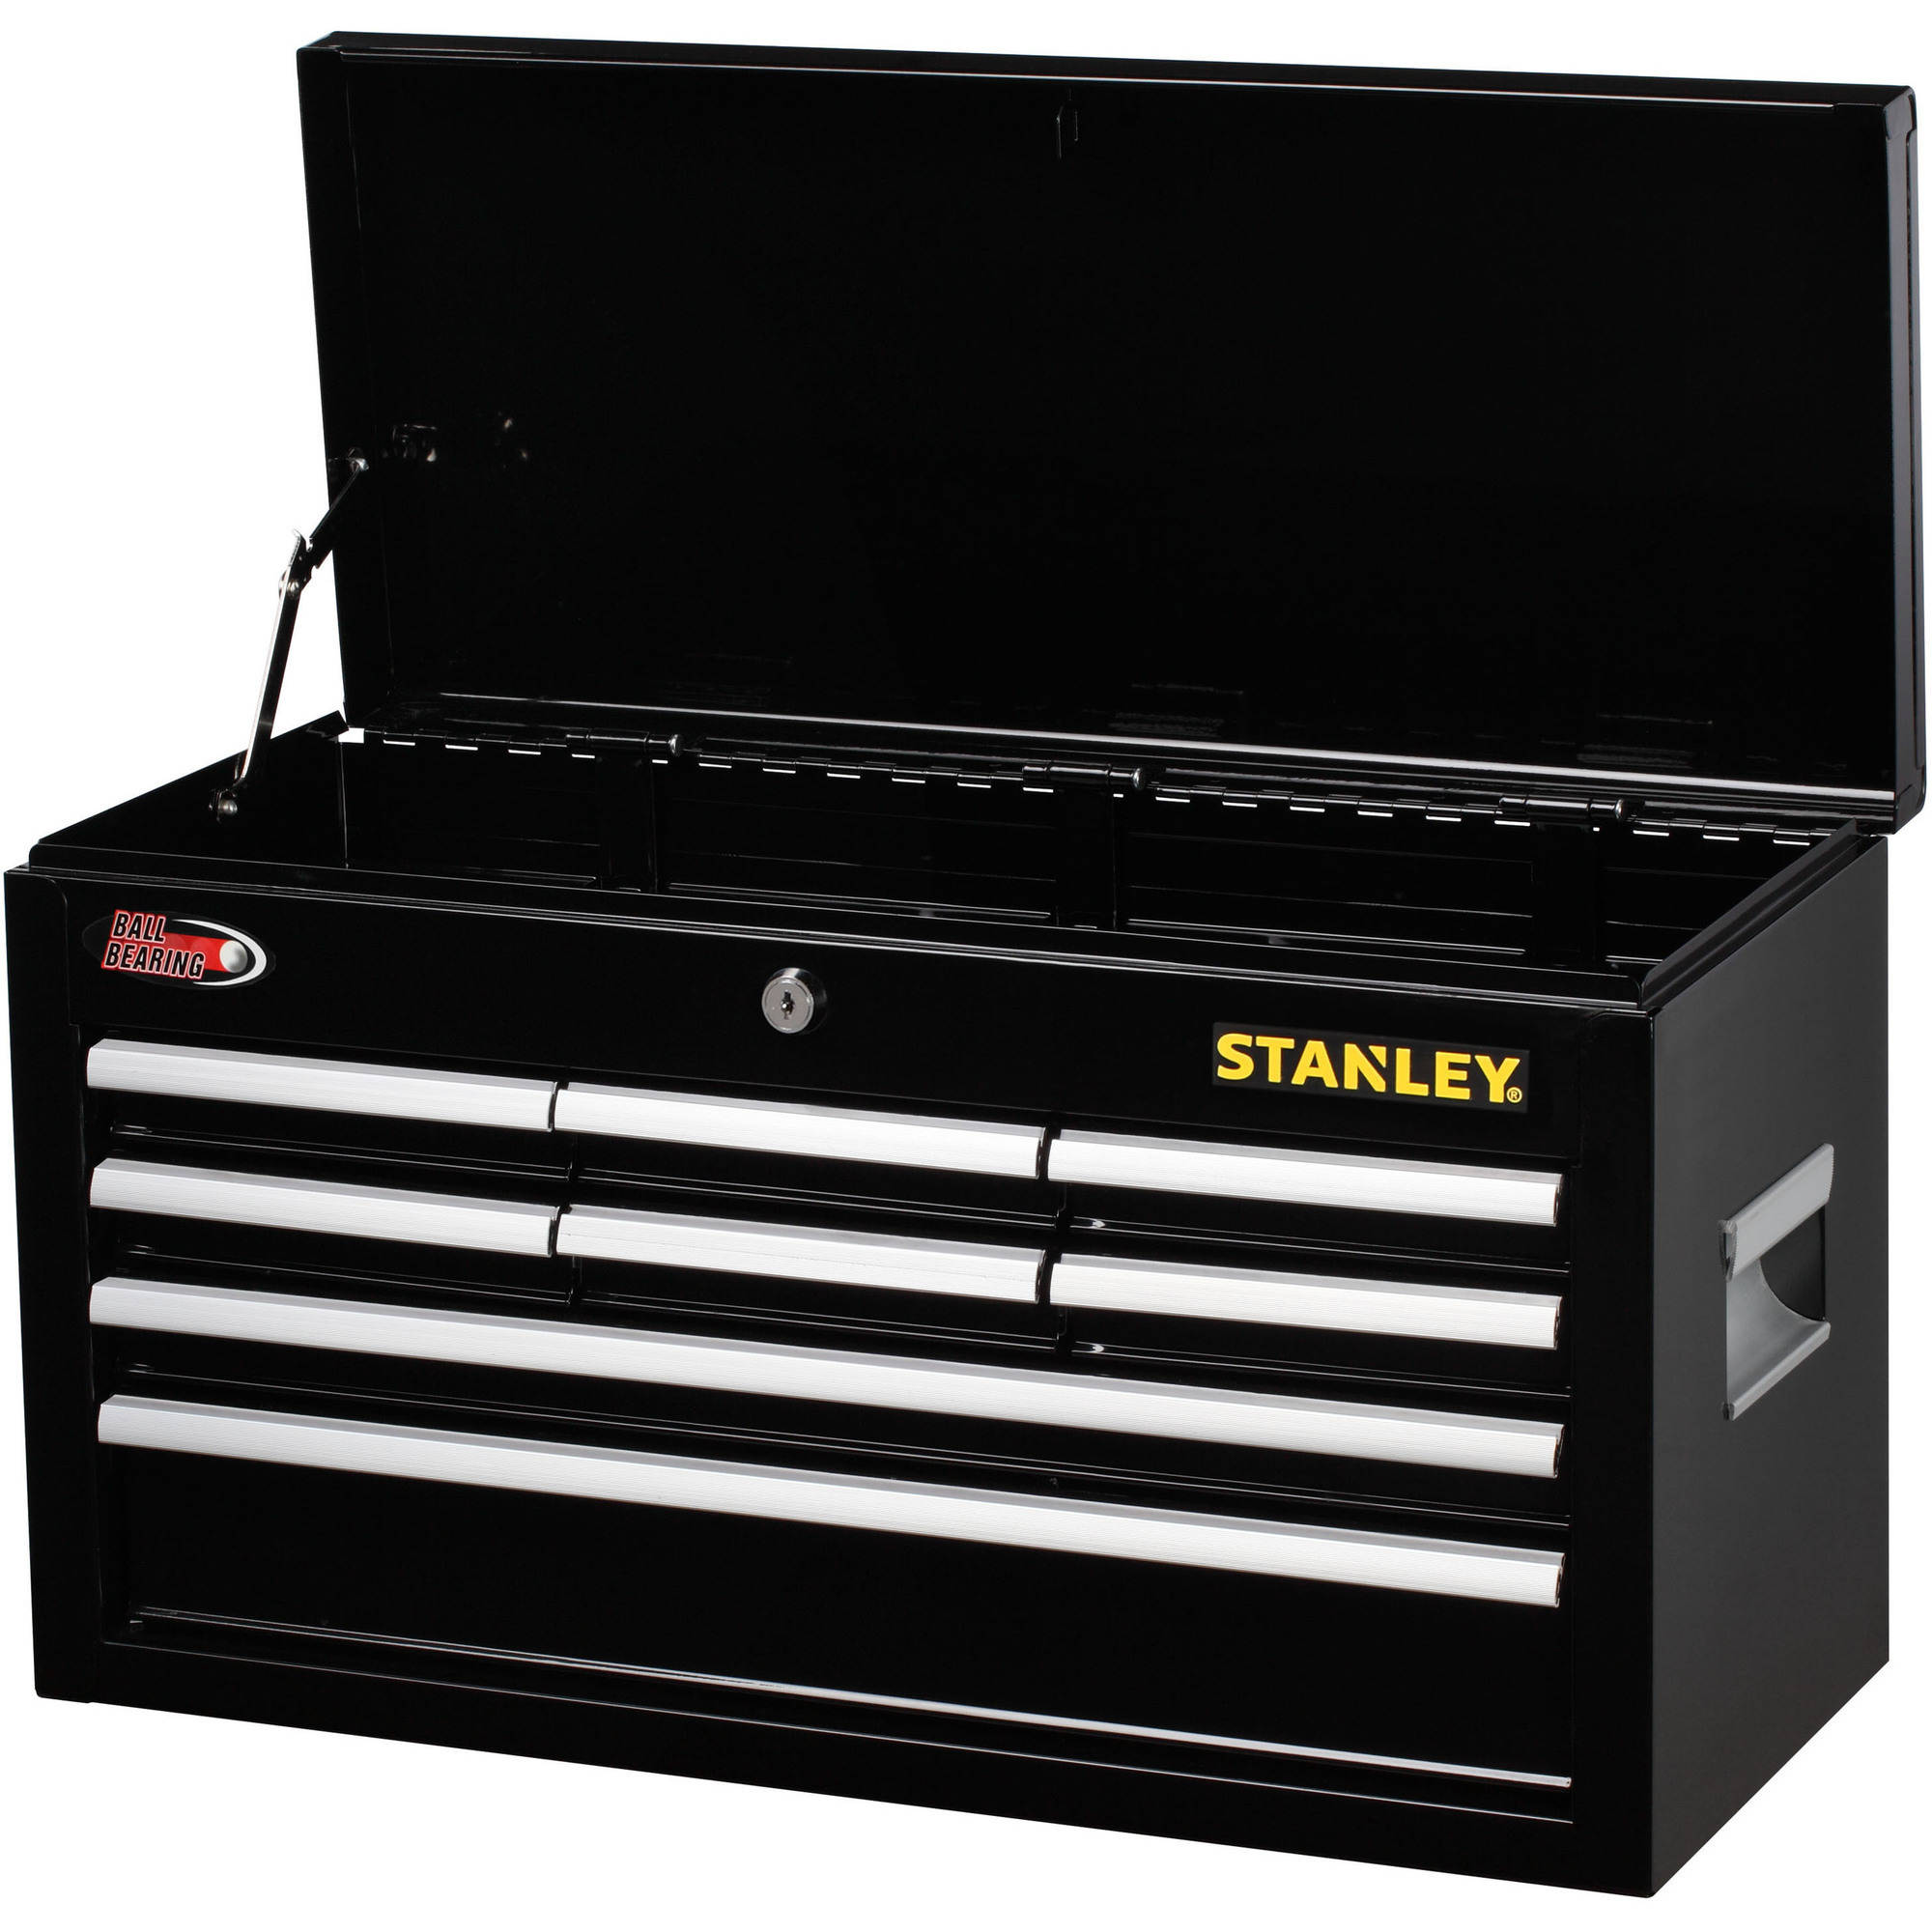 Stanley 24-Inch 8-Drawer Chest, Black